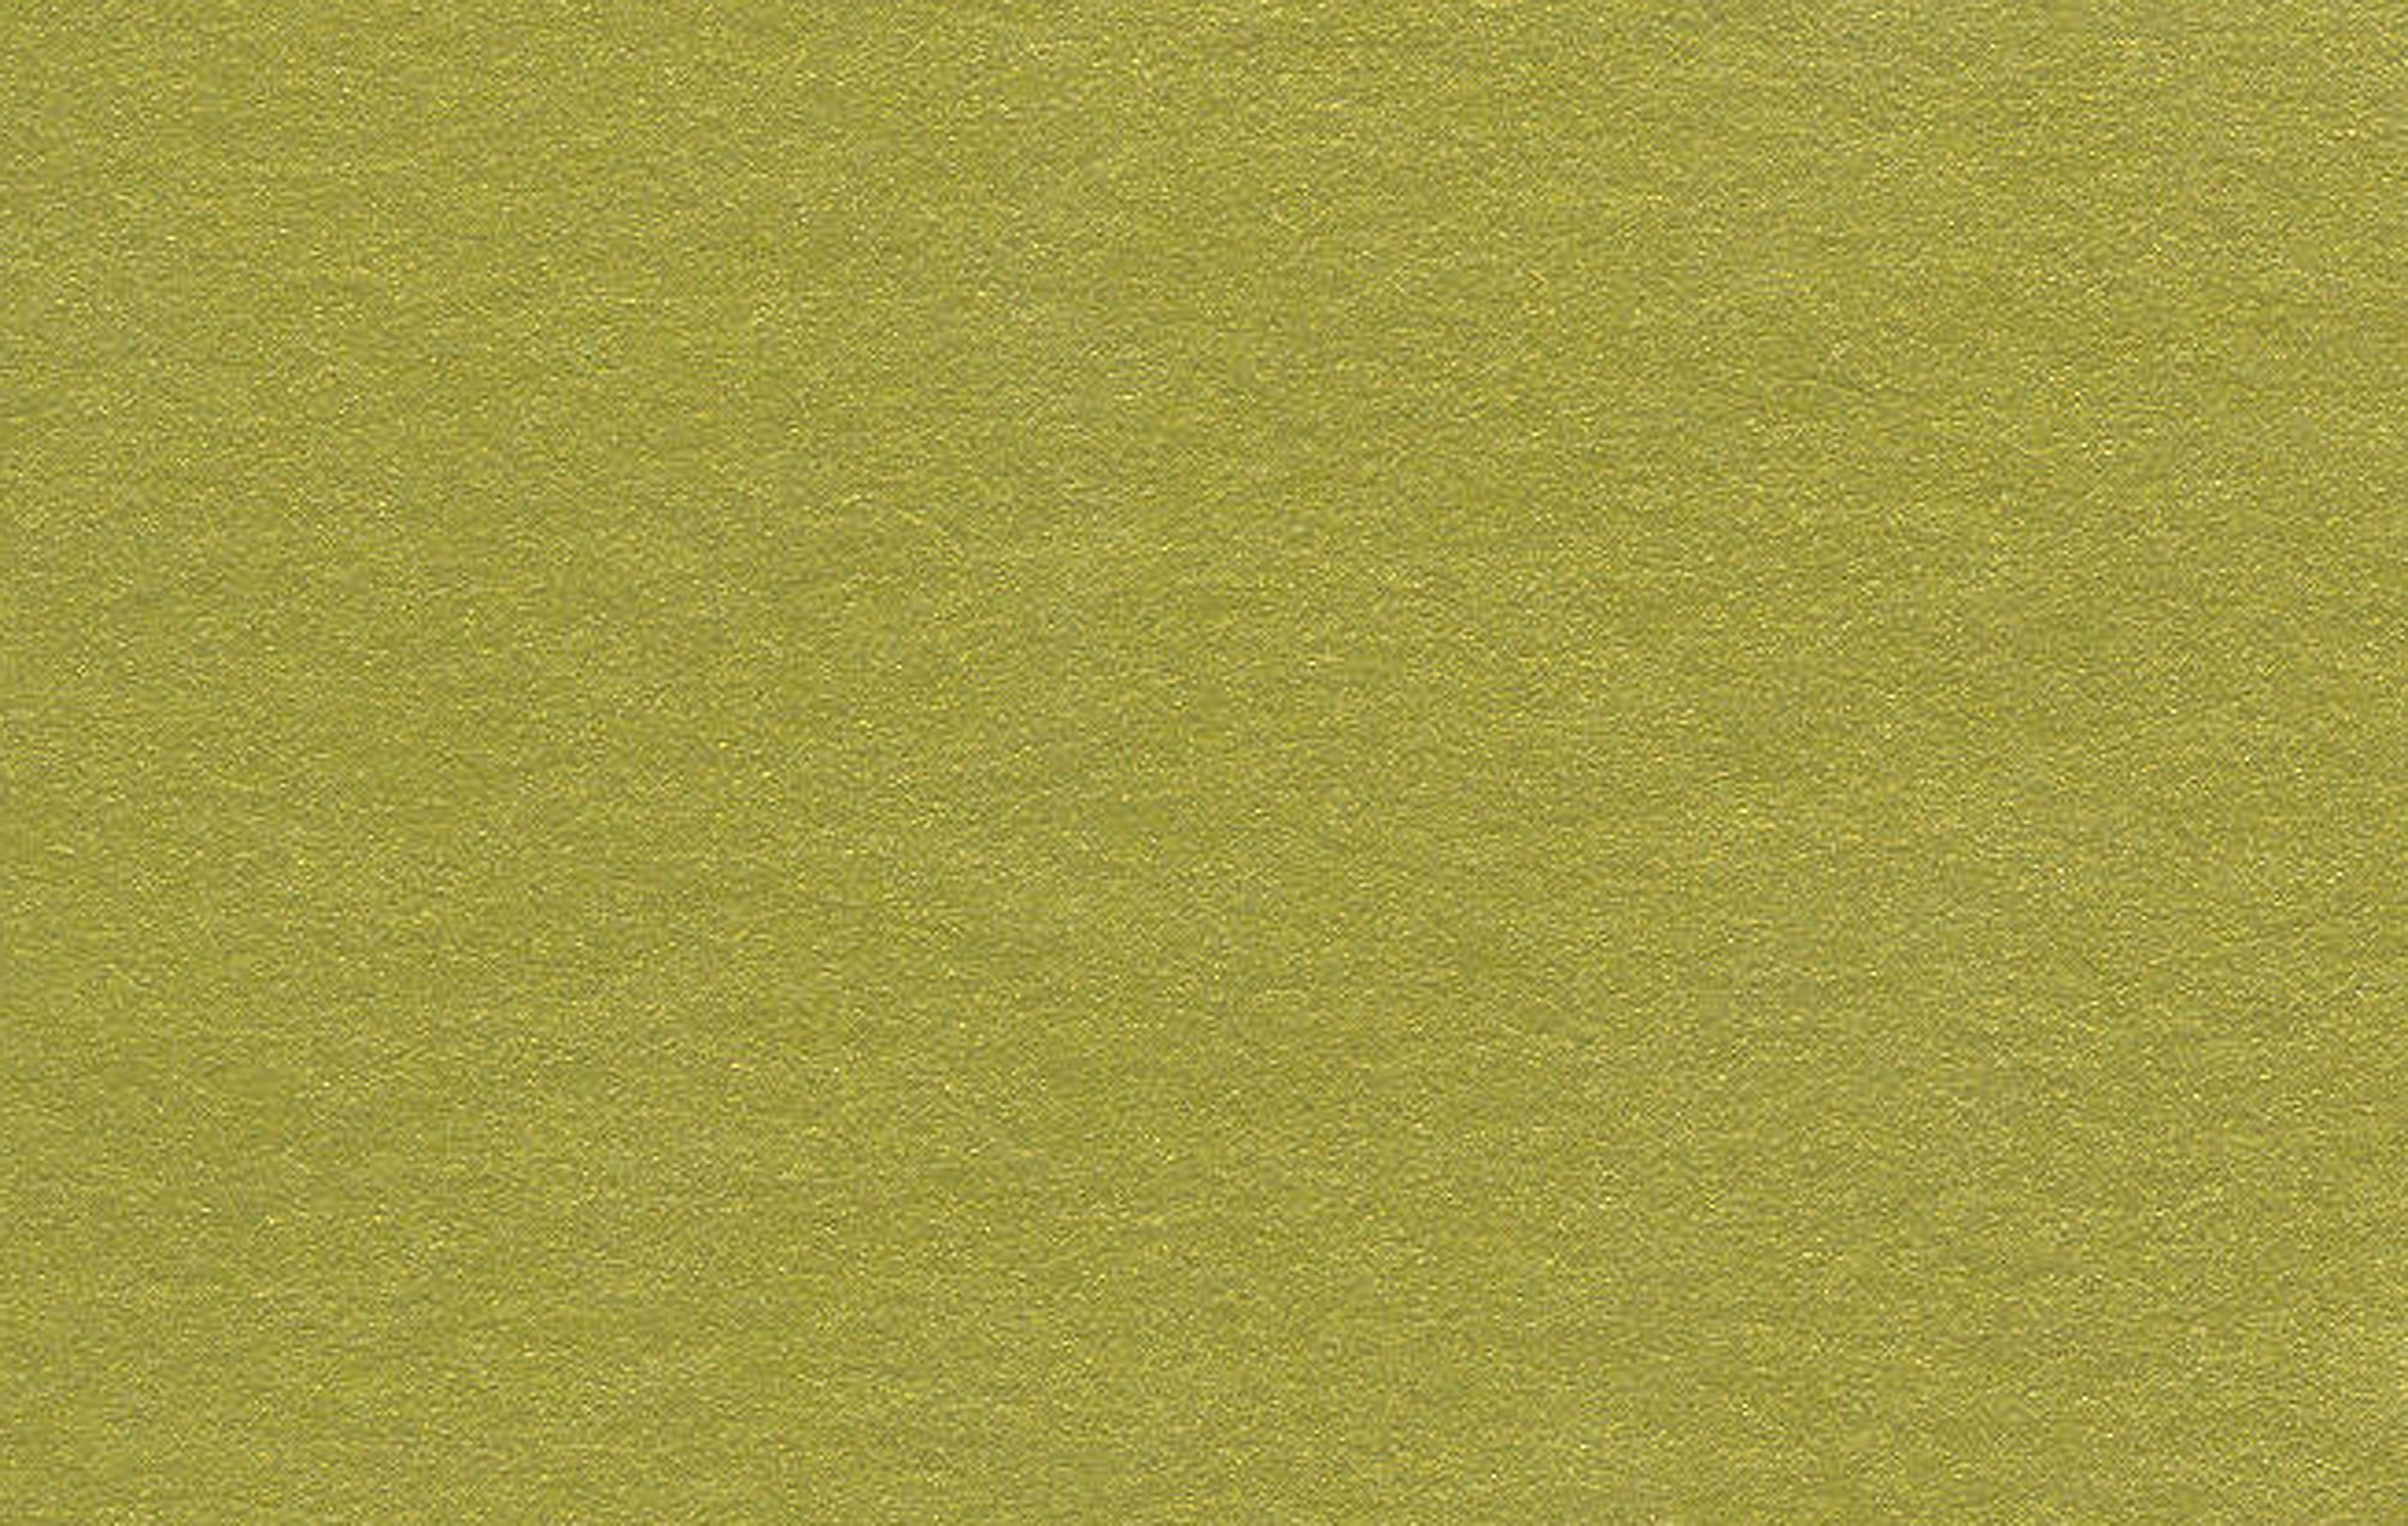 Goldline Clairefontaine Mount Board, A1, 750 g, 1.25 mm Thick - Gold, Pack of 10